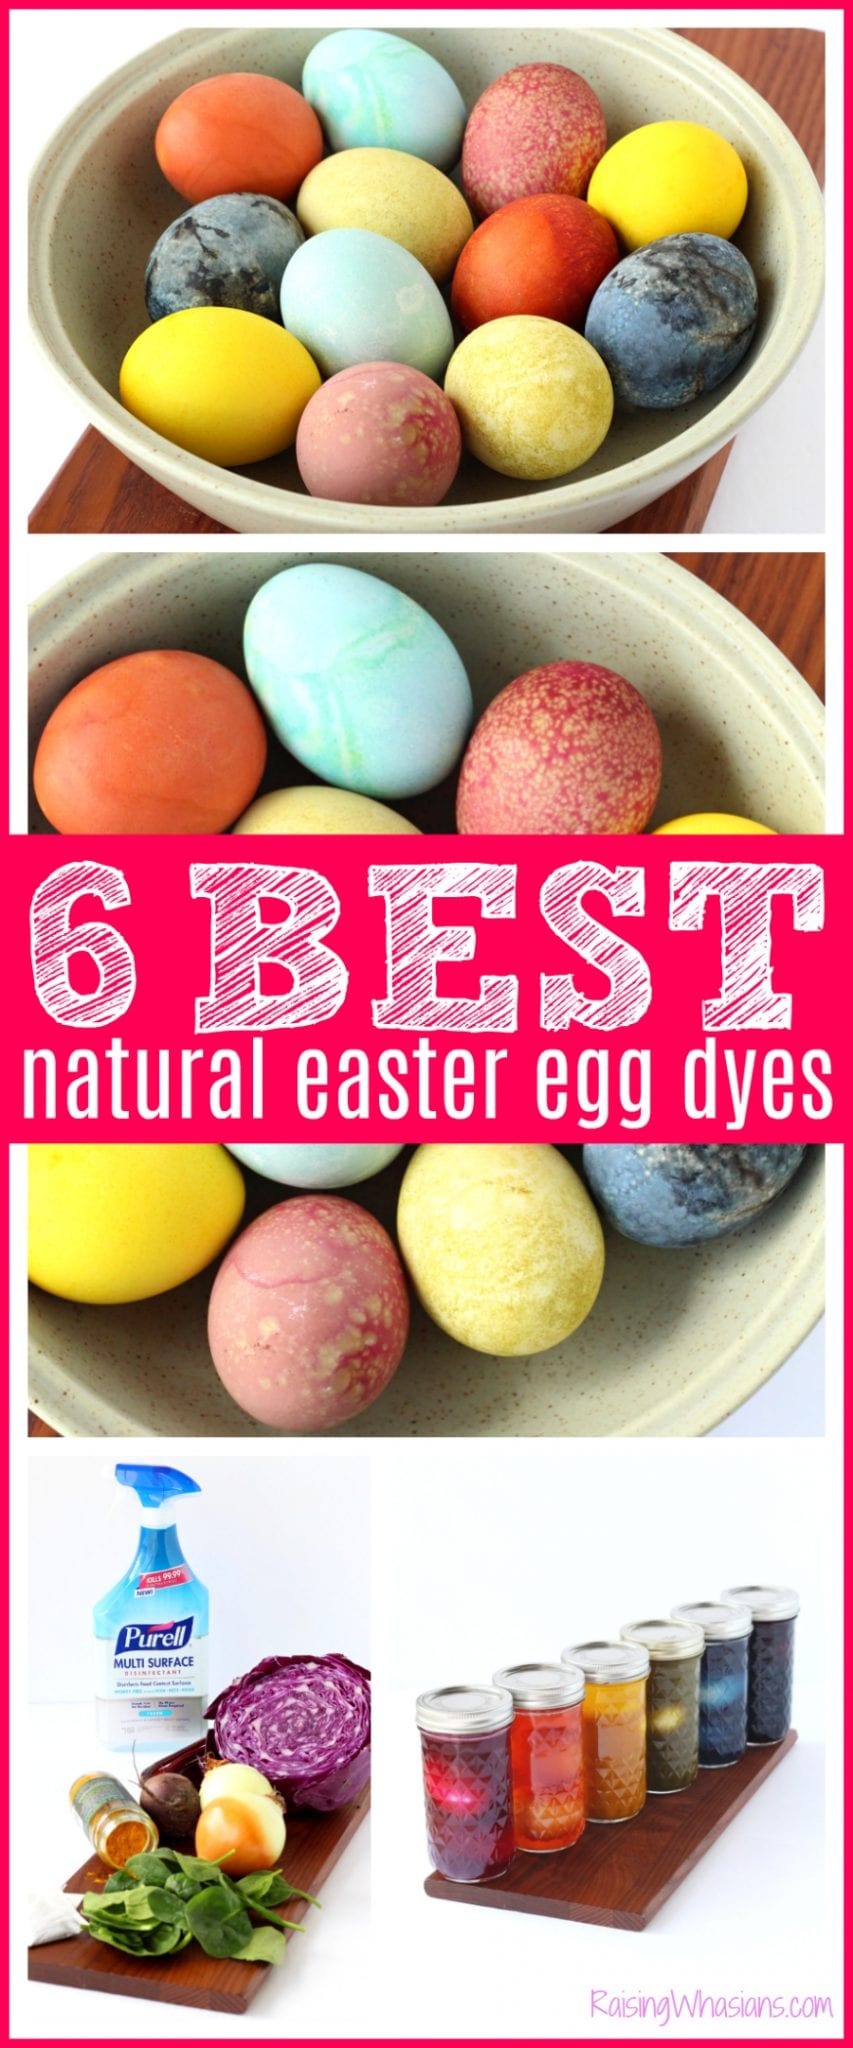 Best all natural egg dyes